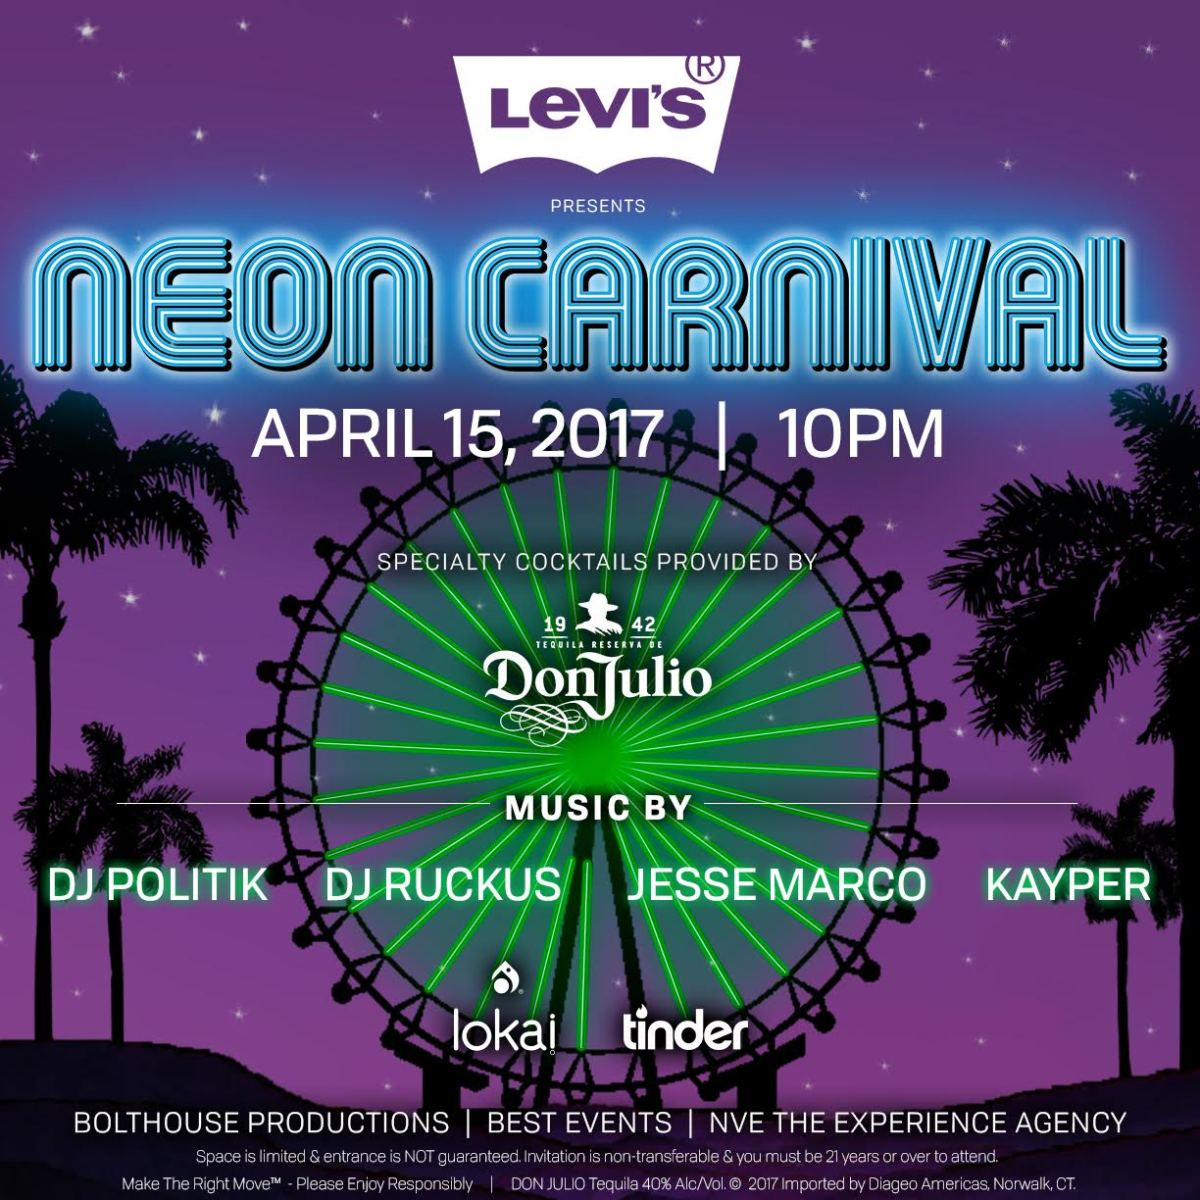 2017 Neon Carnival official Coachella invite flyer